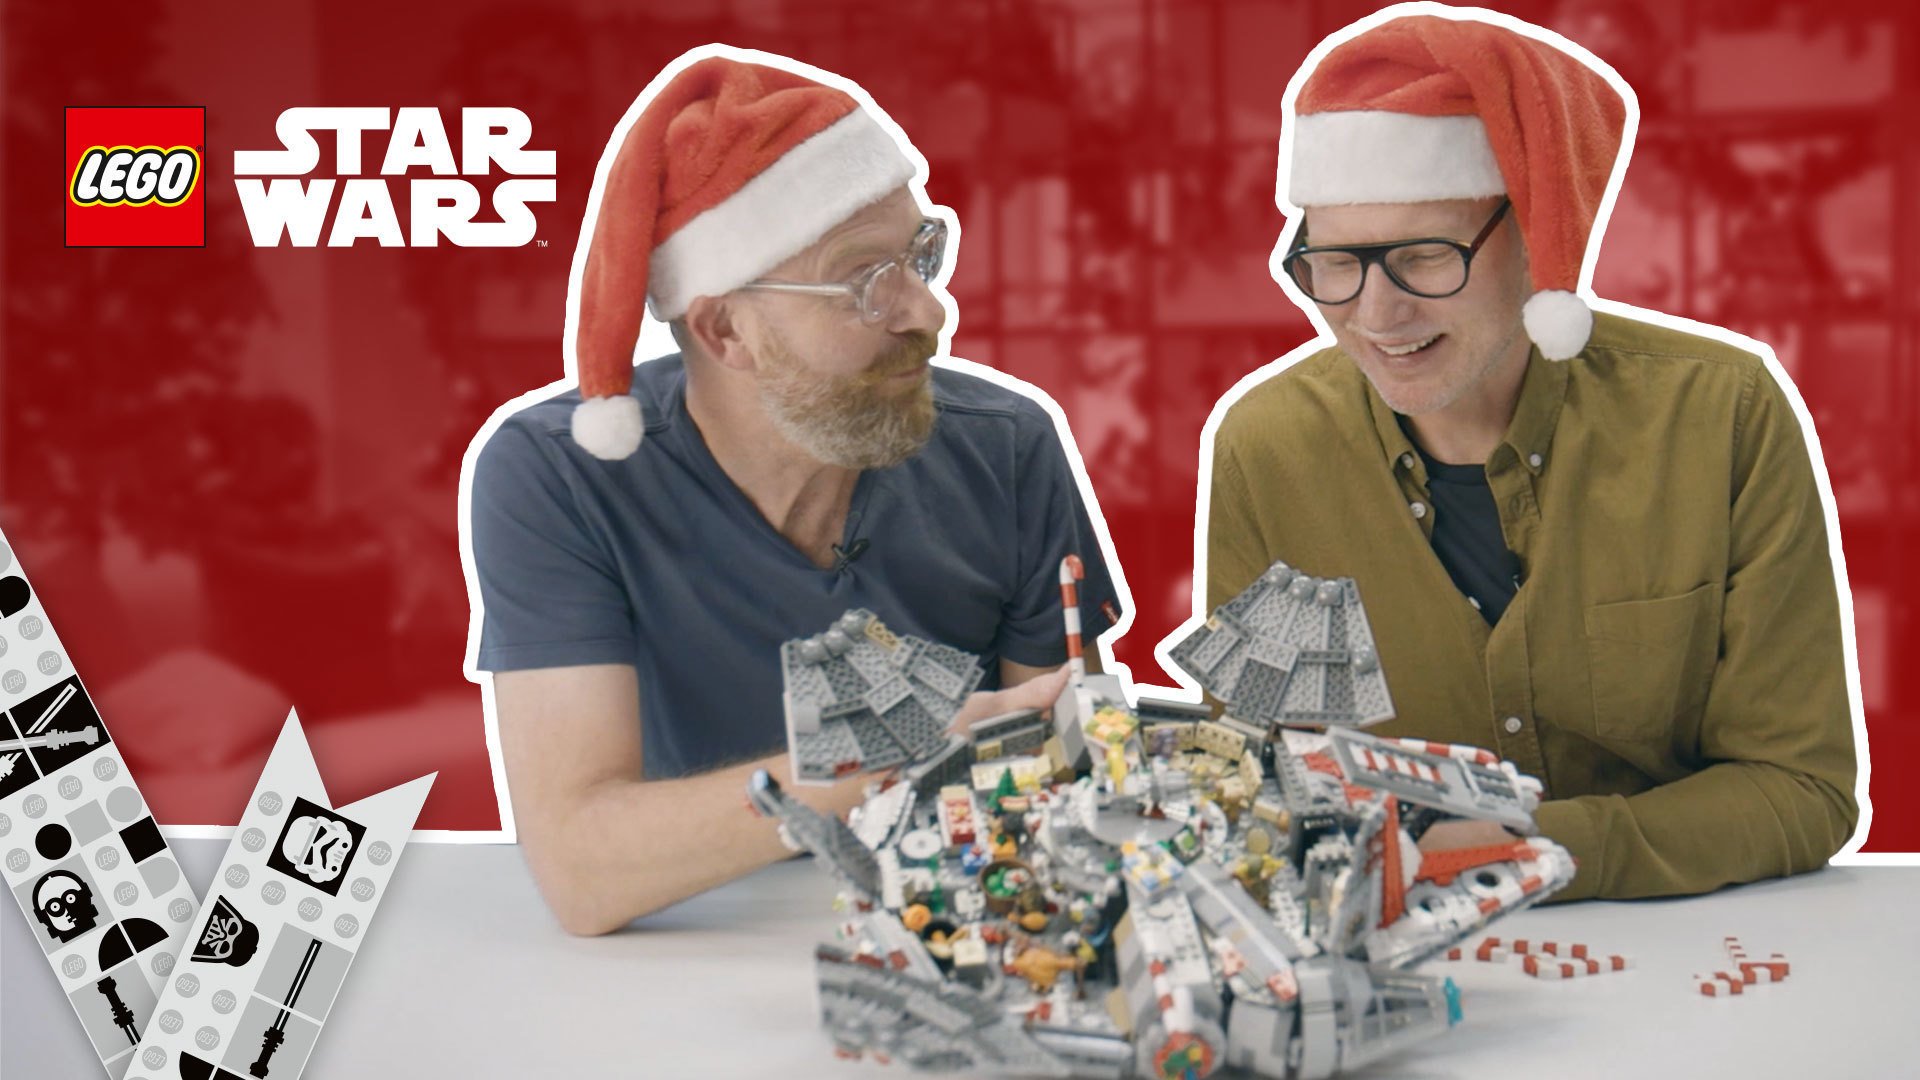 How To Decorate Millennium Falcon For the Holidays | LEGO® Star Wars